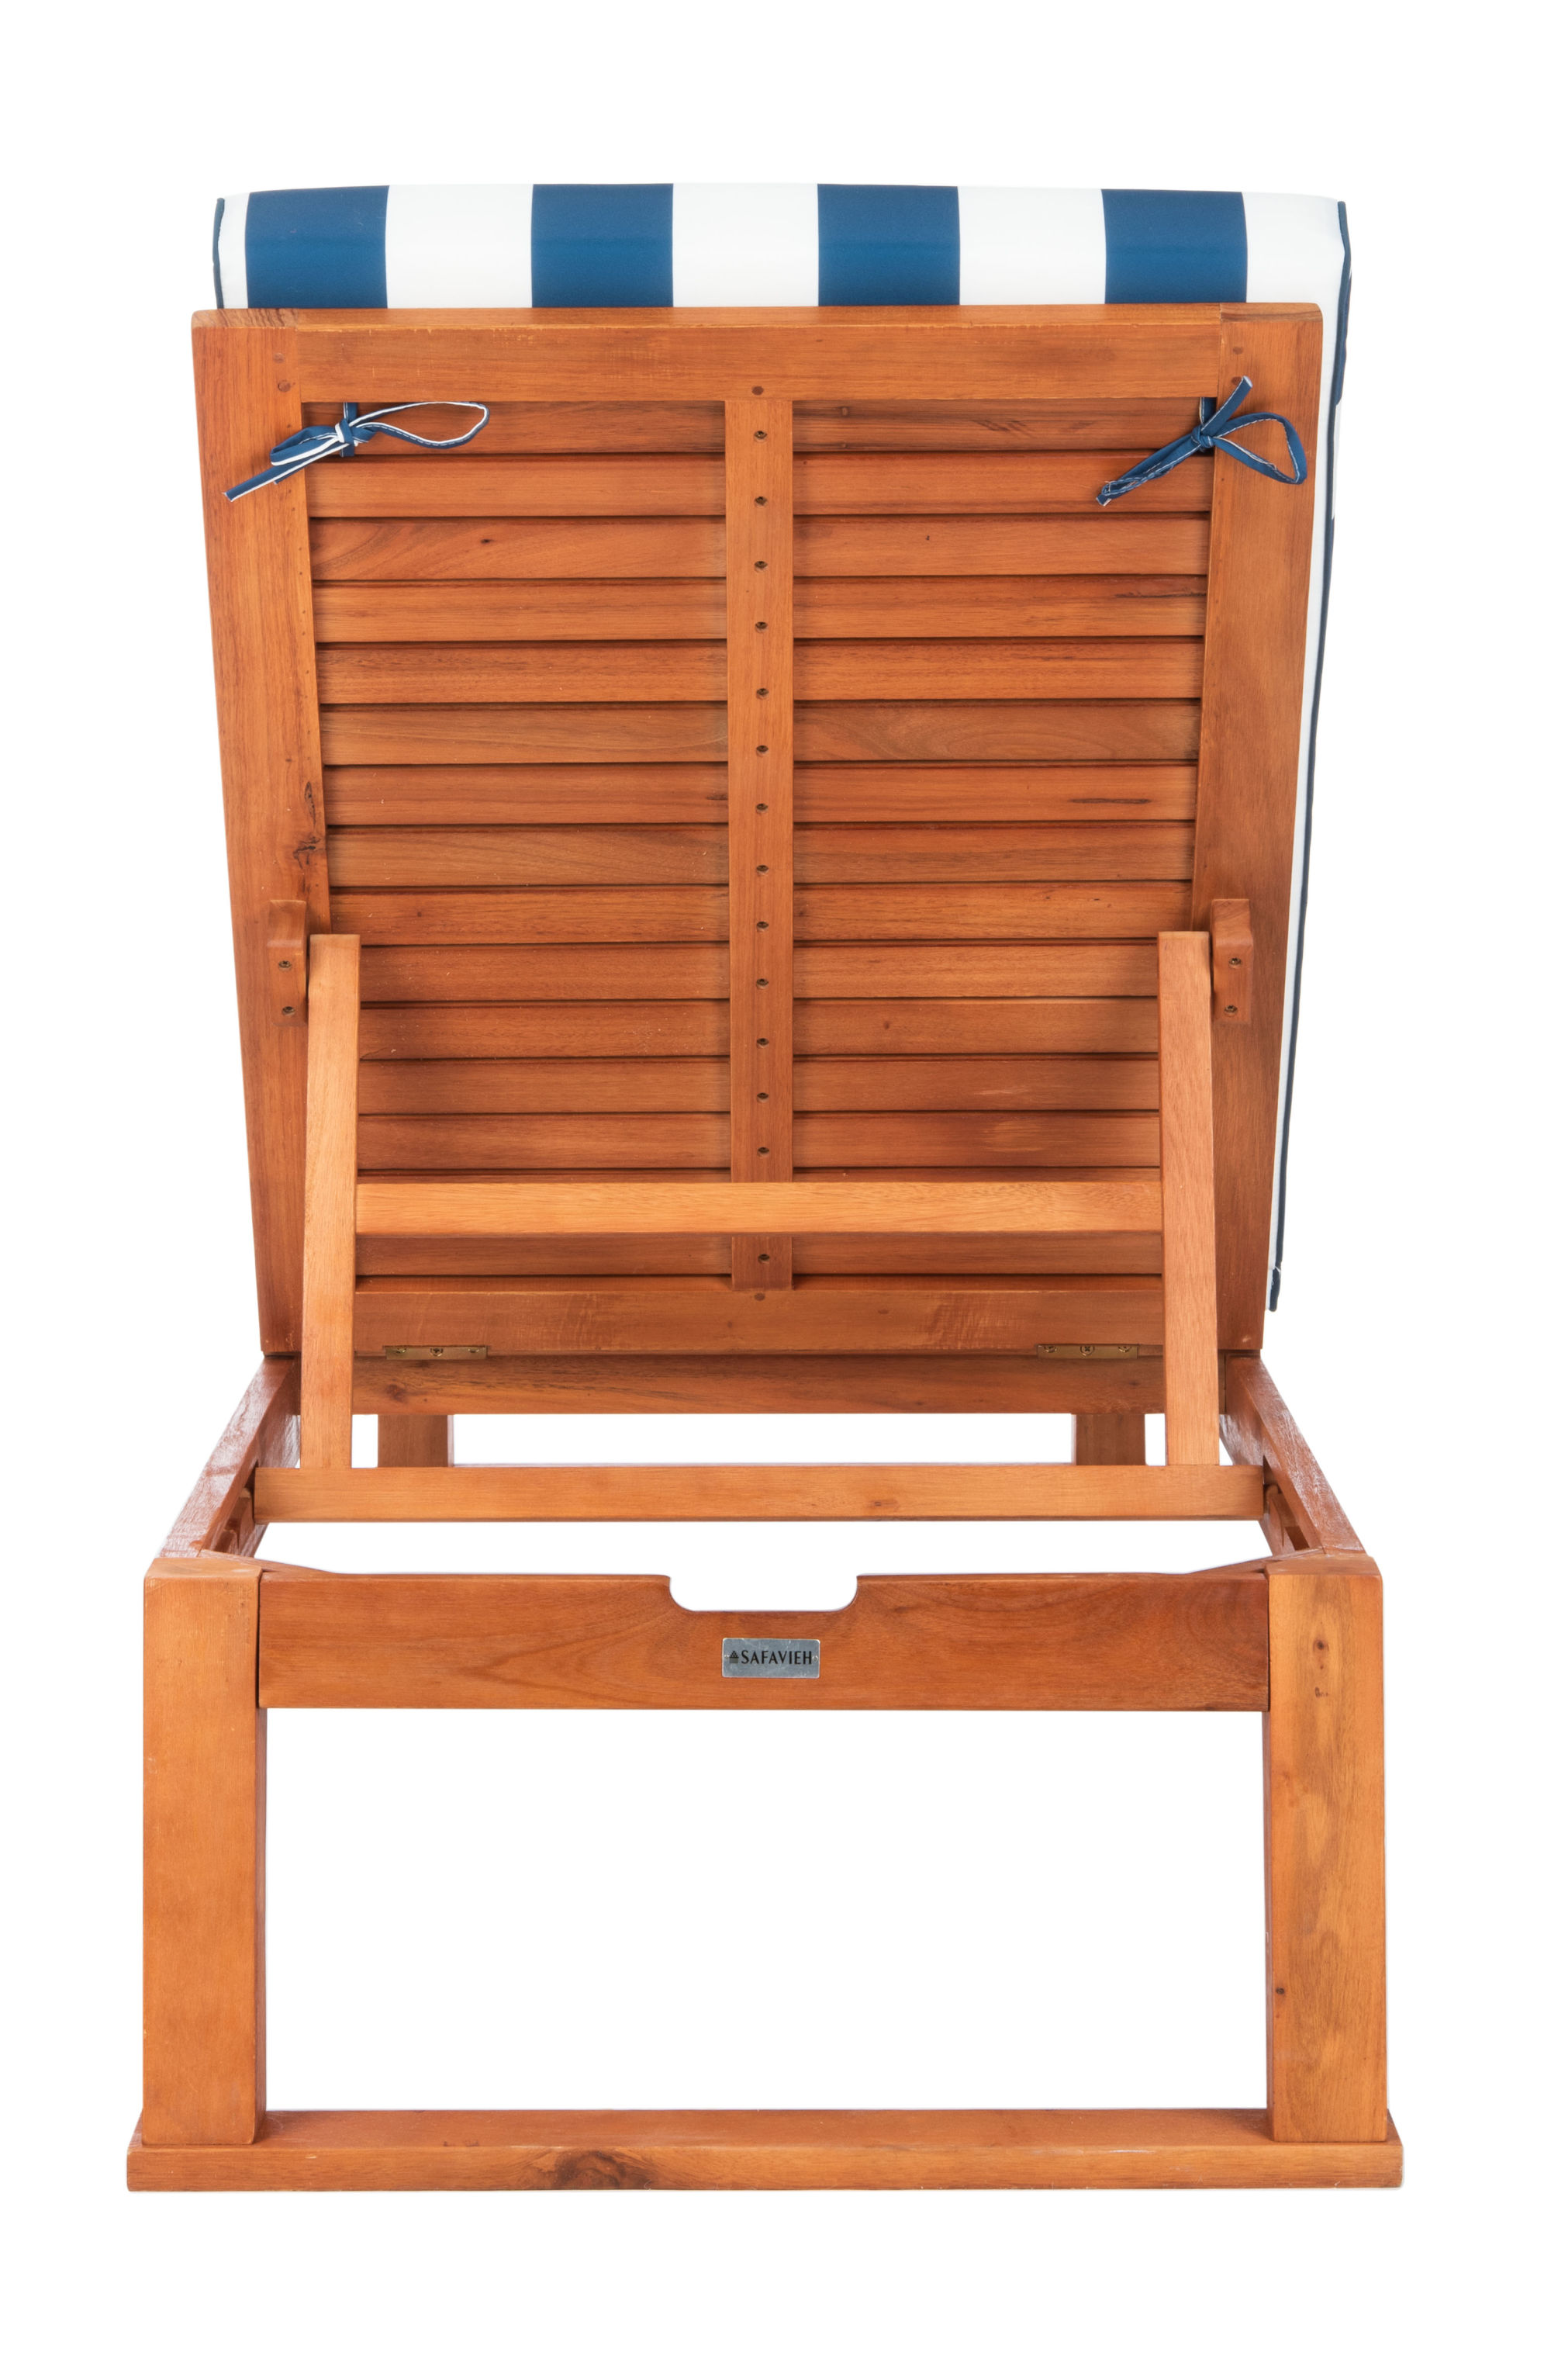 Solano Sunlounger on Safavieh Outdoor Living Solano Sunlounger id=14395